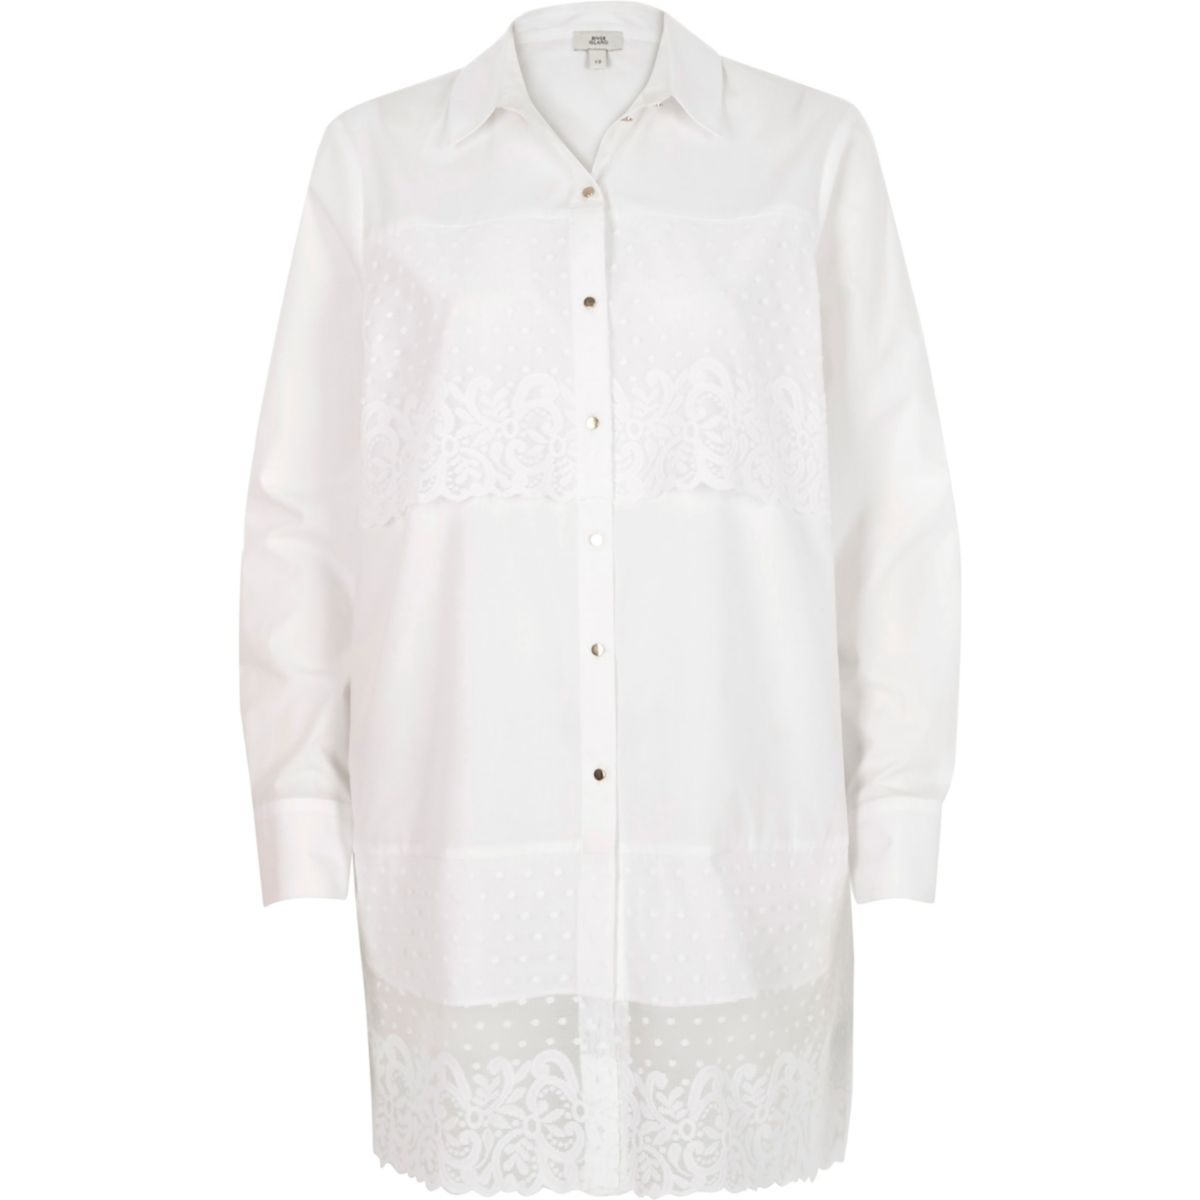 White lace panel longline shirt